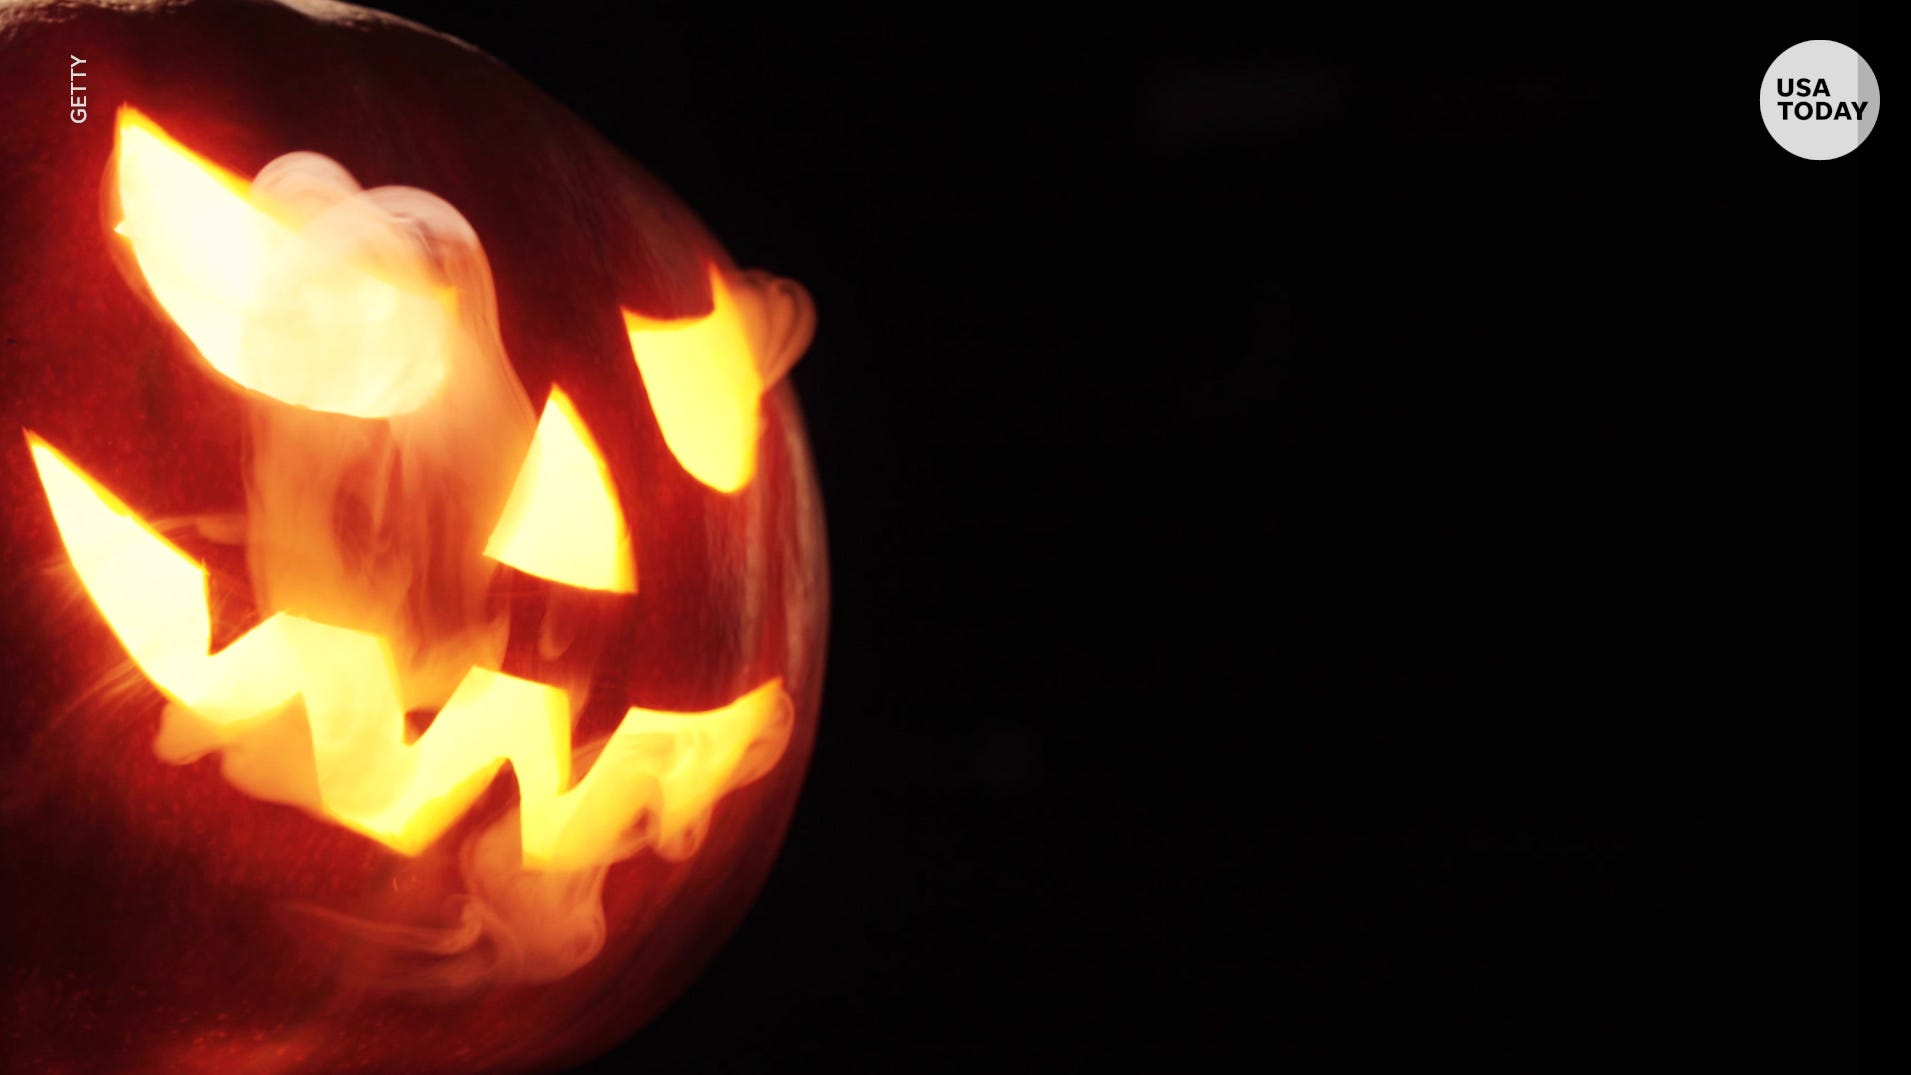 Church Halloween Events Near Md 2020 Halloween 2020: Spooky events on Maryland Lower Shore amid COVID